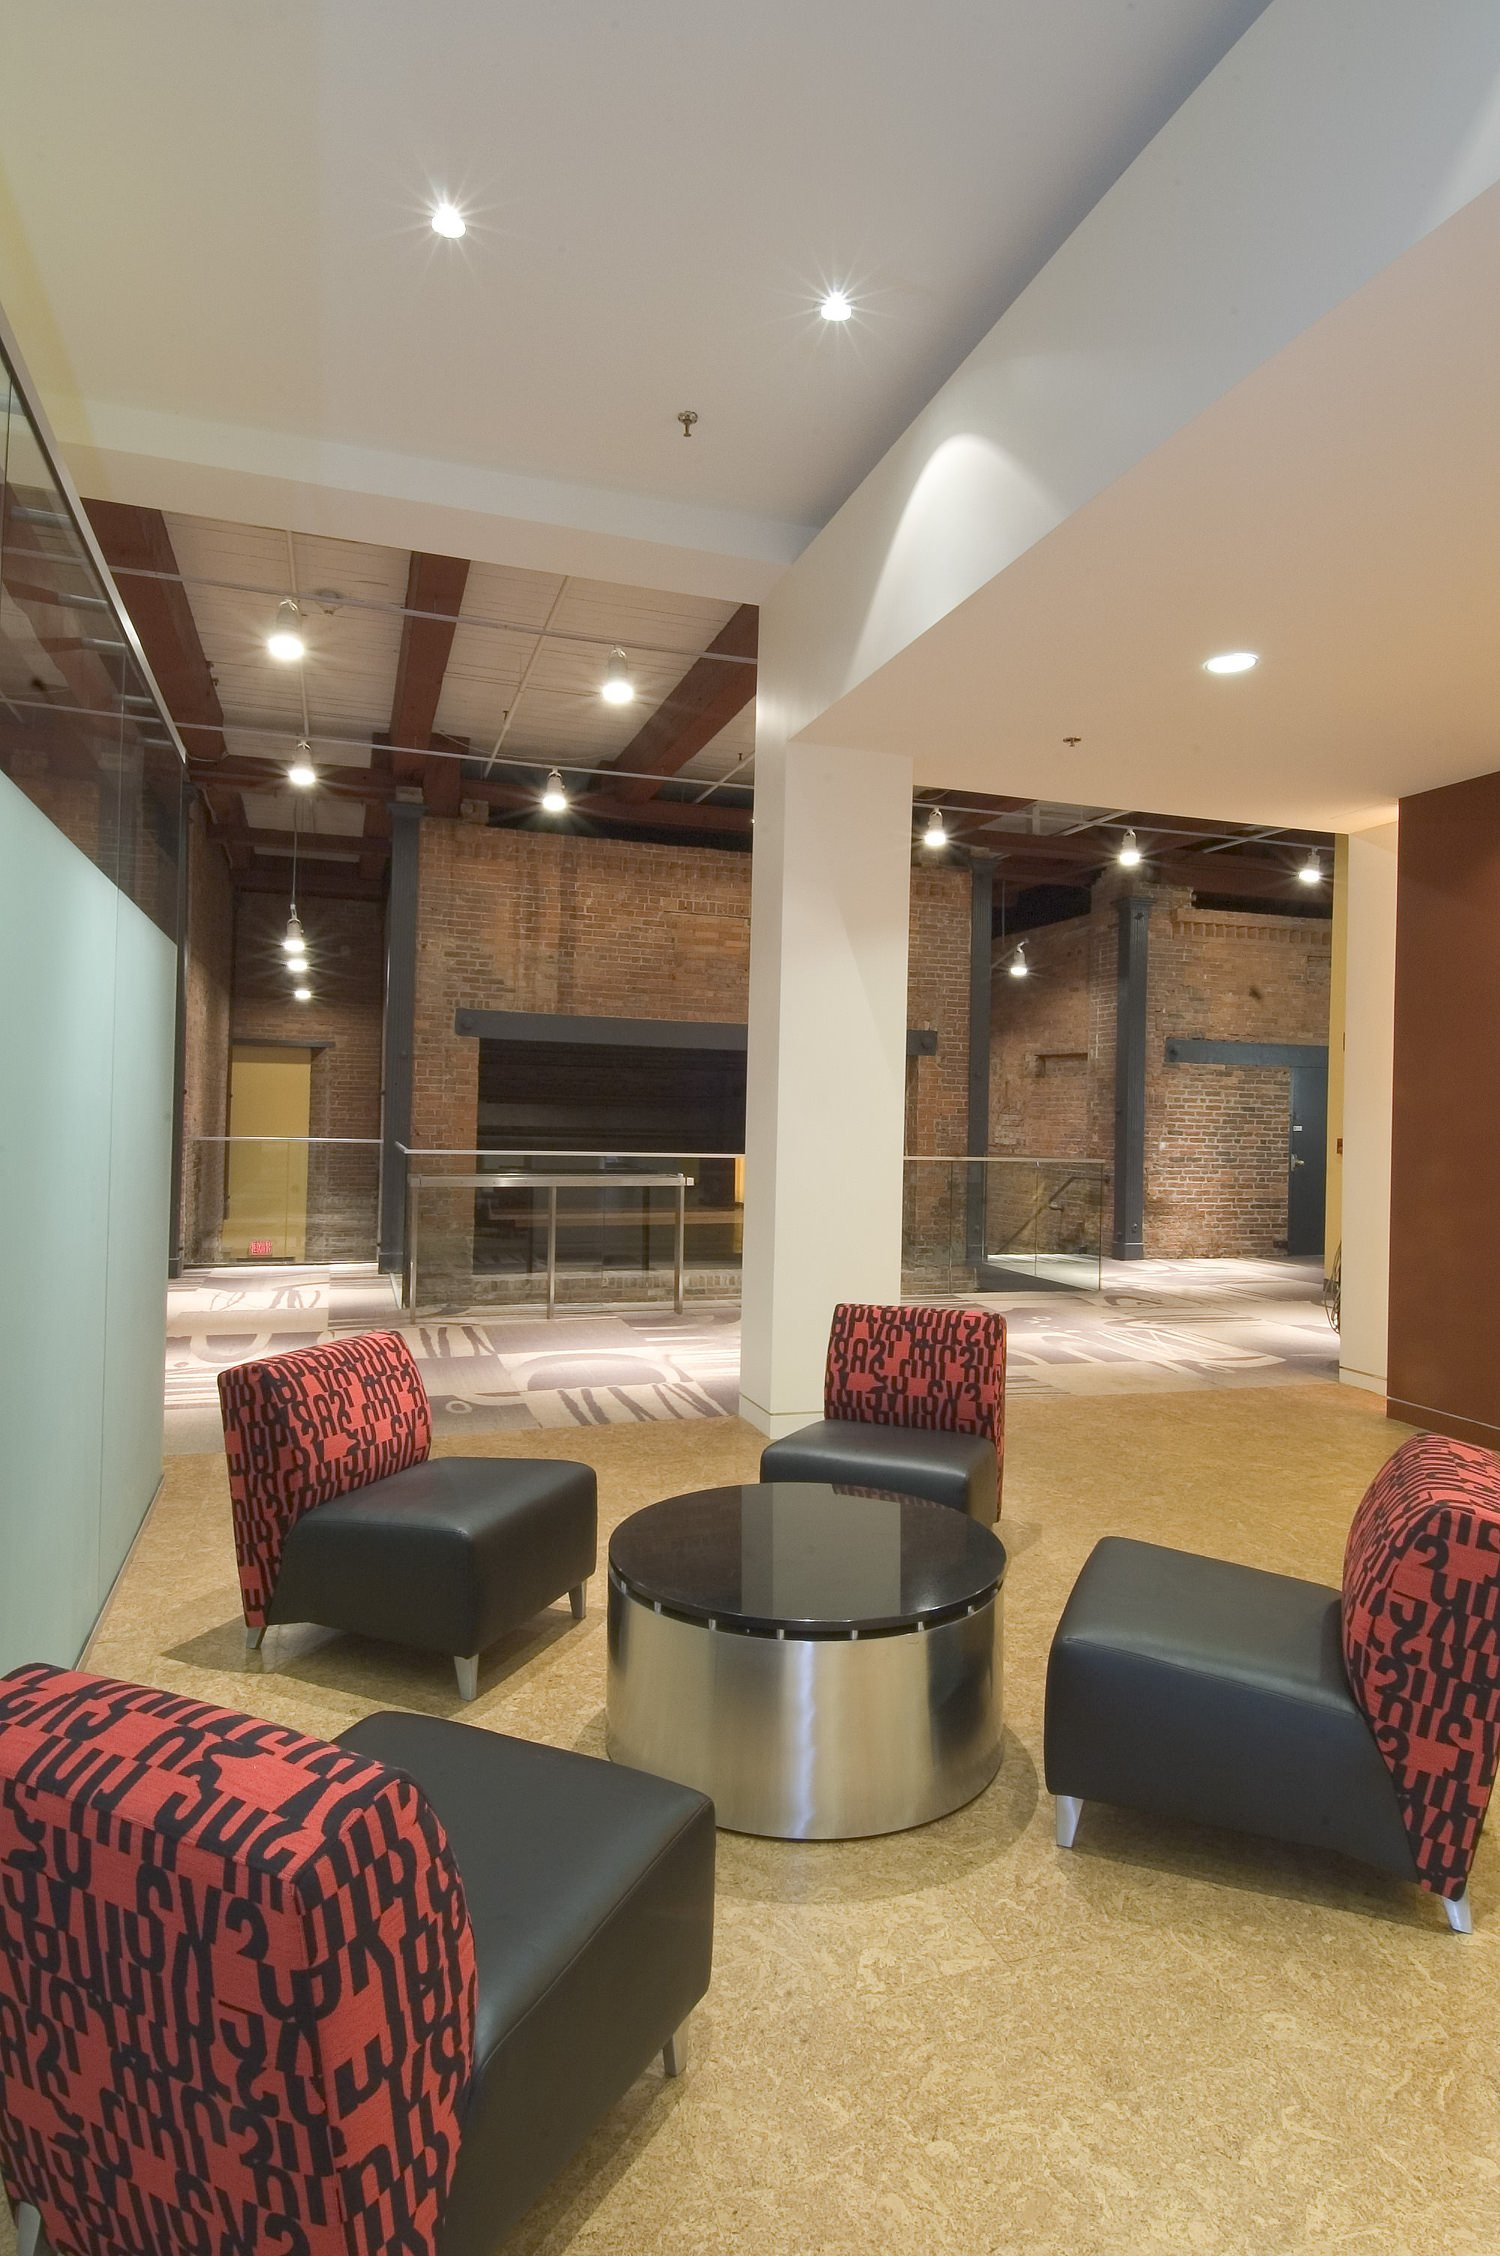 A sitting area that is located in the lobby of a building with four chairs around one table.